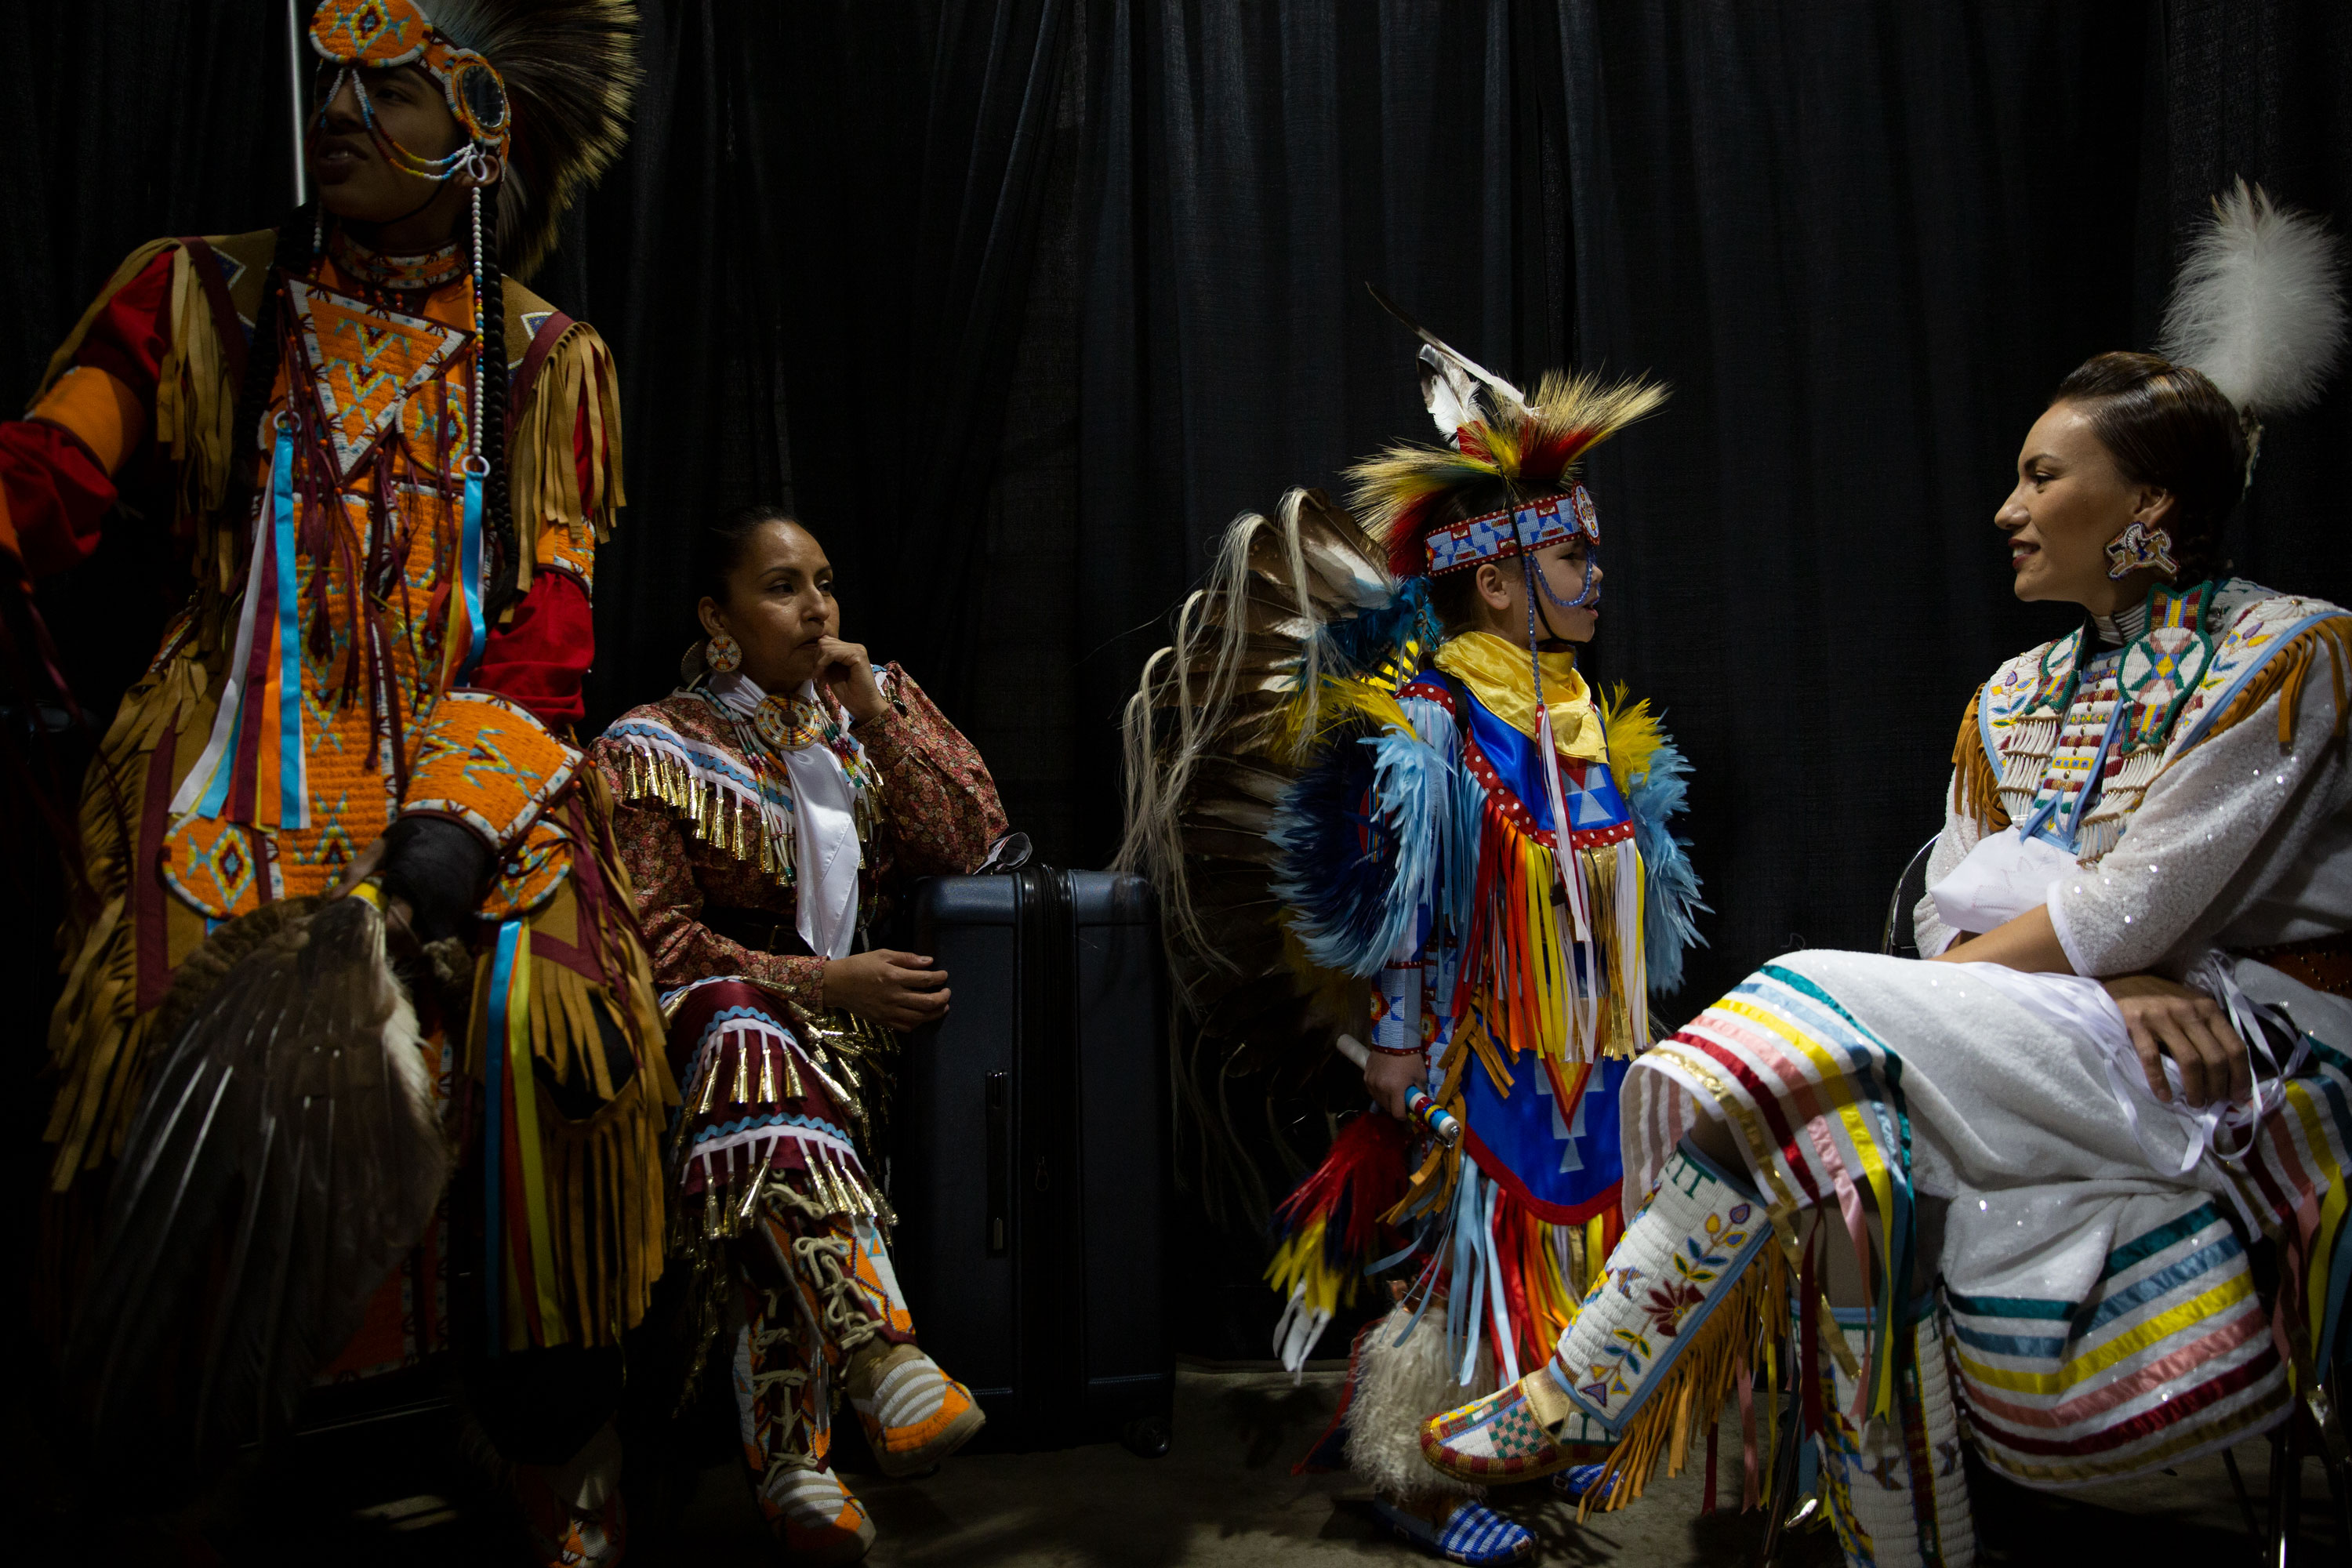 "<p>(L-R) Wambdi Clairmont, Kiva Trujillo, <span style=""color: rgb(64, 69, 64);"">Omani Denny </span>Clairmont and Tanksi Clairmont wait backstage at the Denver Travel & Adventure Show at the Colorado Convention Center on Feb. 23, 2019. The dancers will perform at the Denver March Pow Wow March 22-24.</p>"